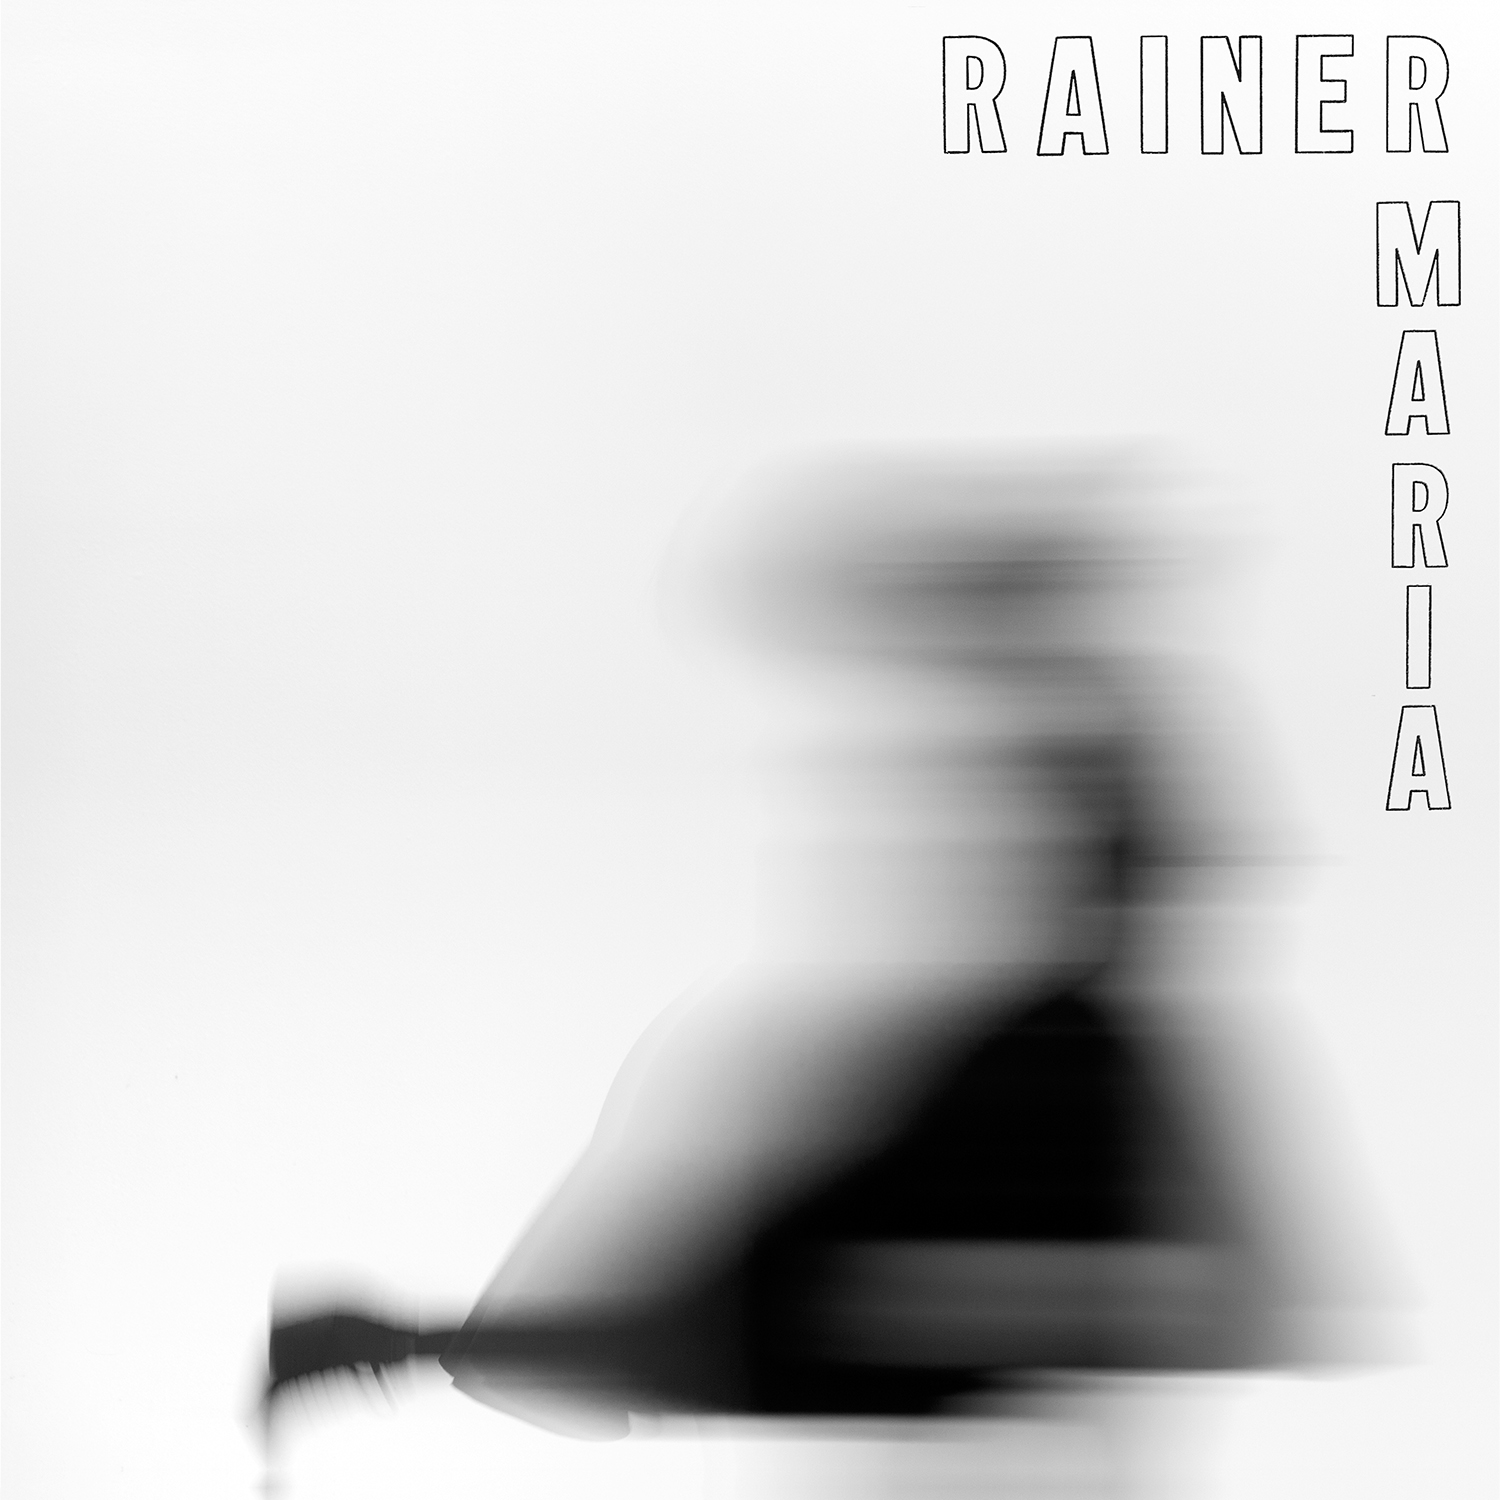 Rainer Maria stream forthcoming, self-titled release.